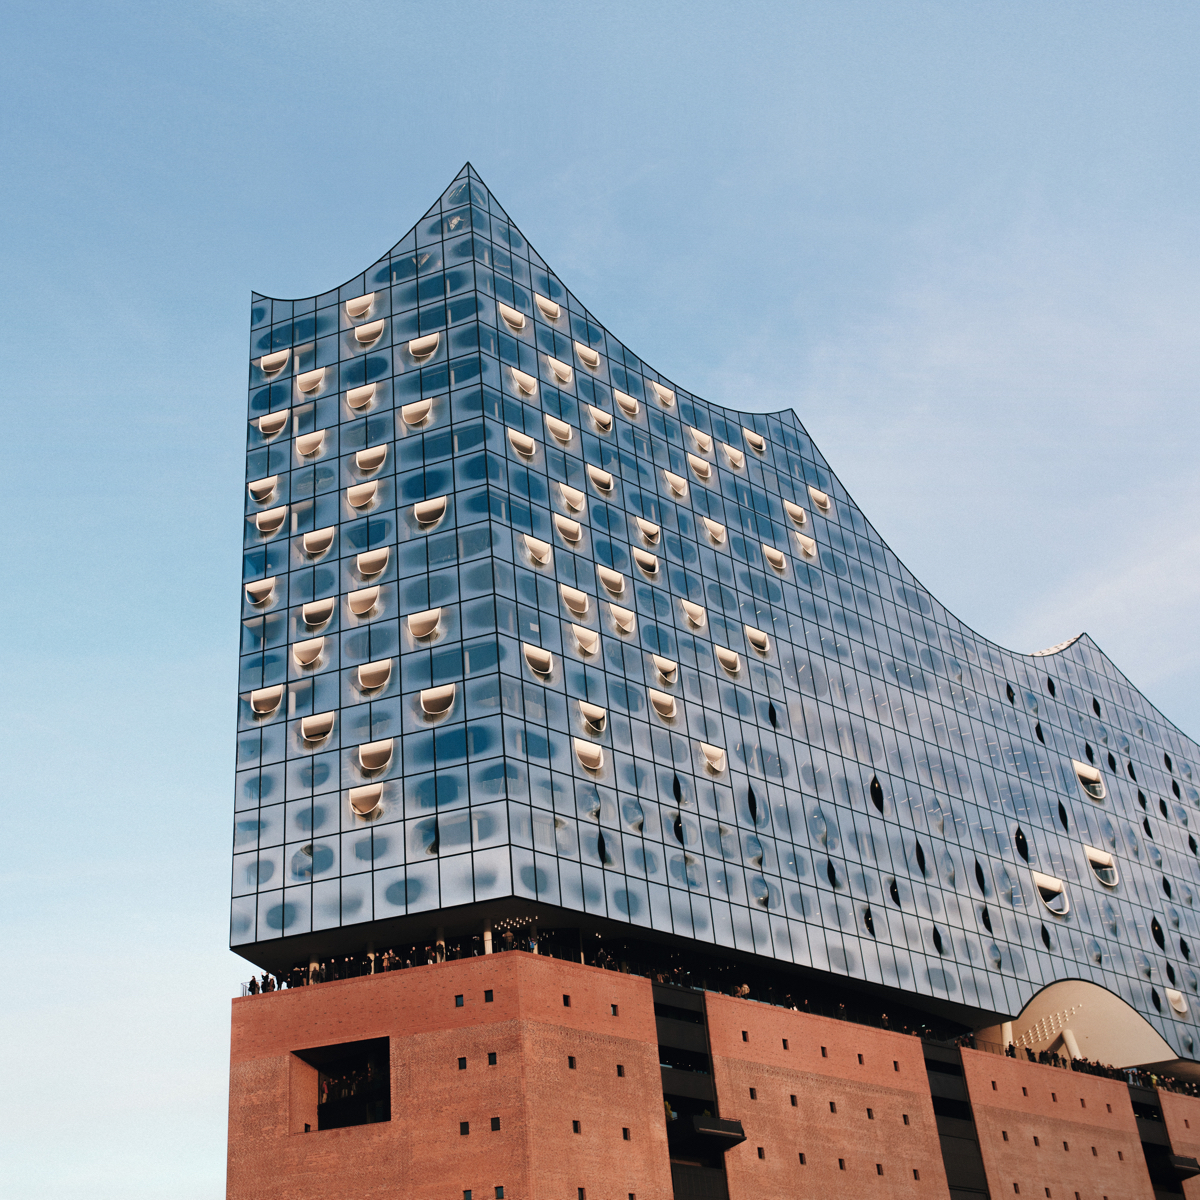 An exterior view of the Elbphilharmonie.